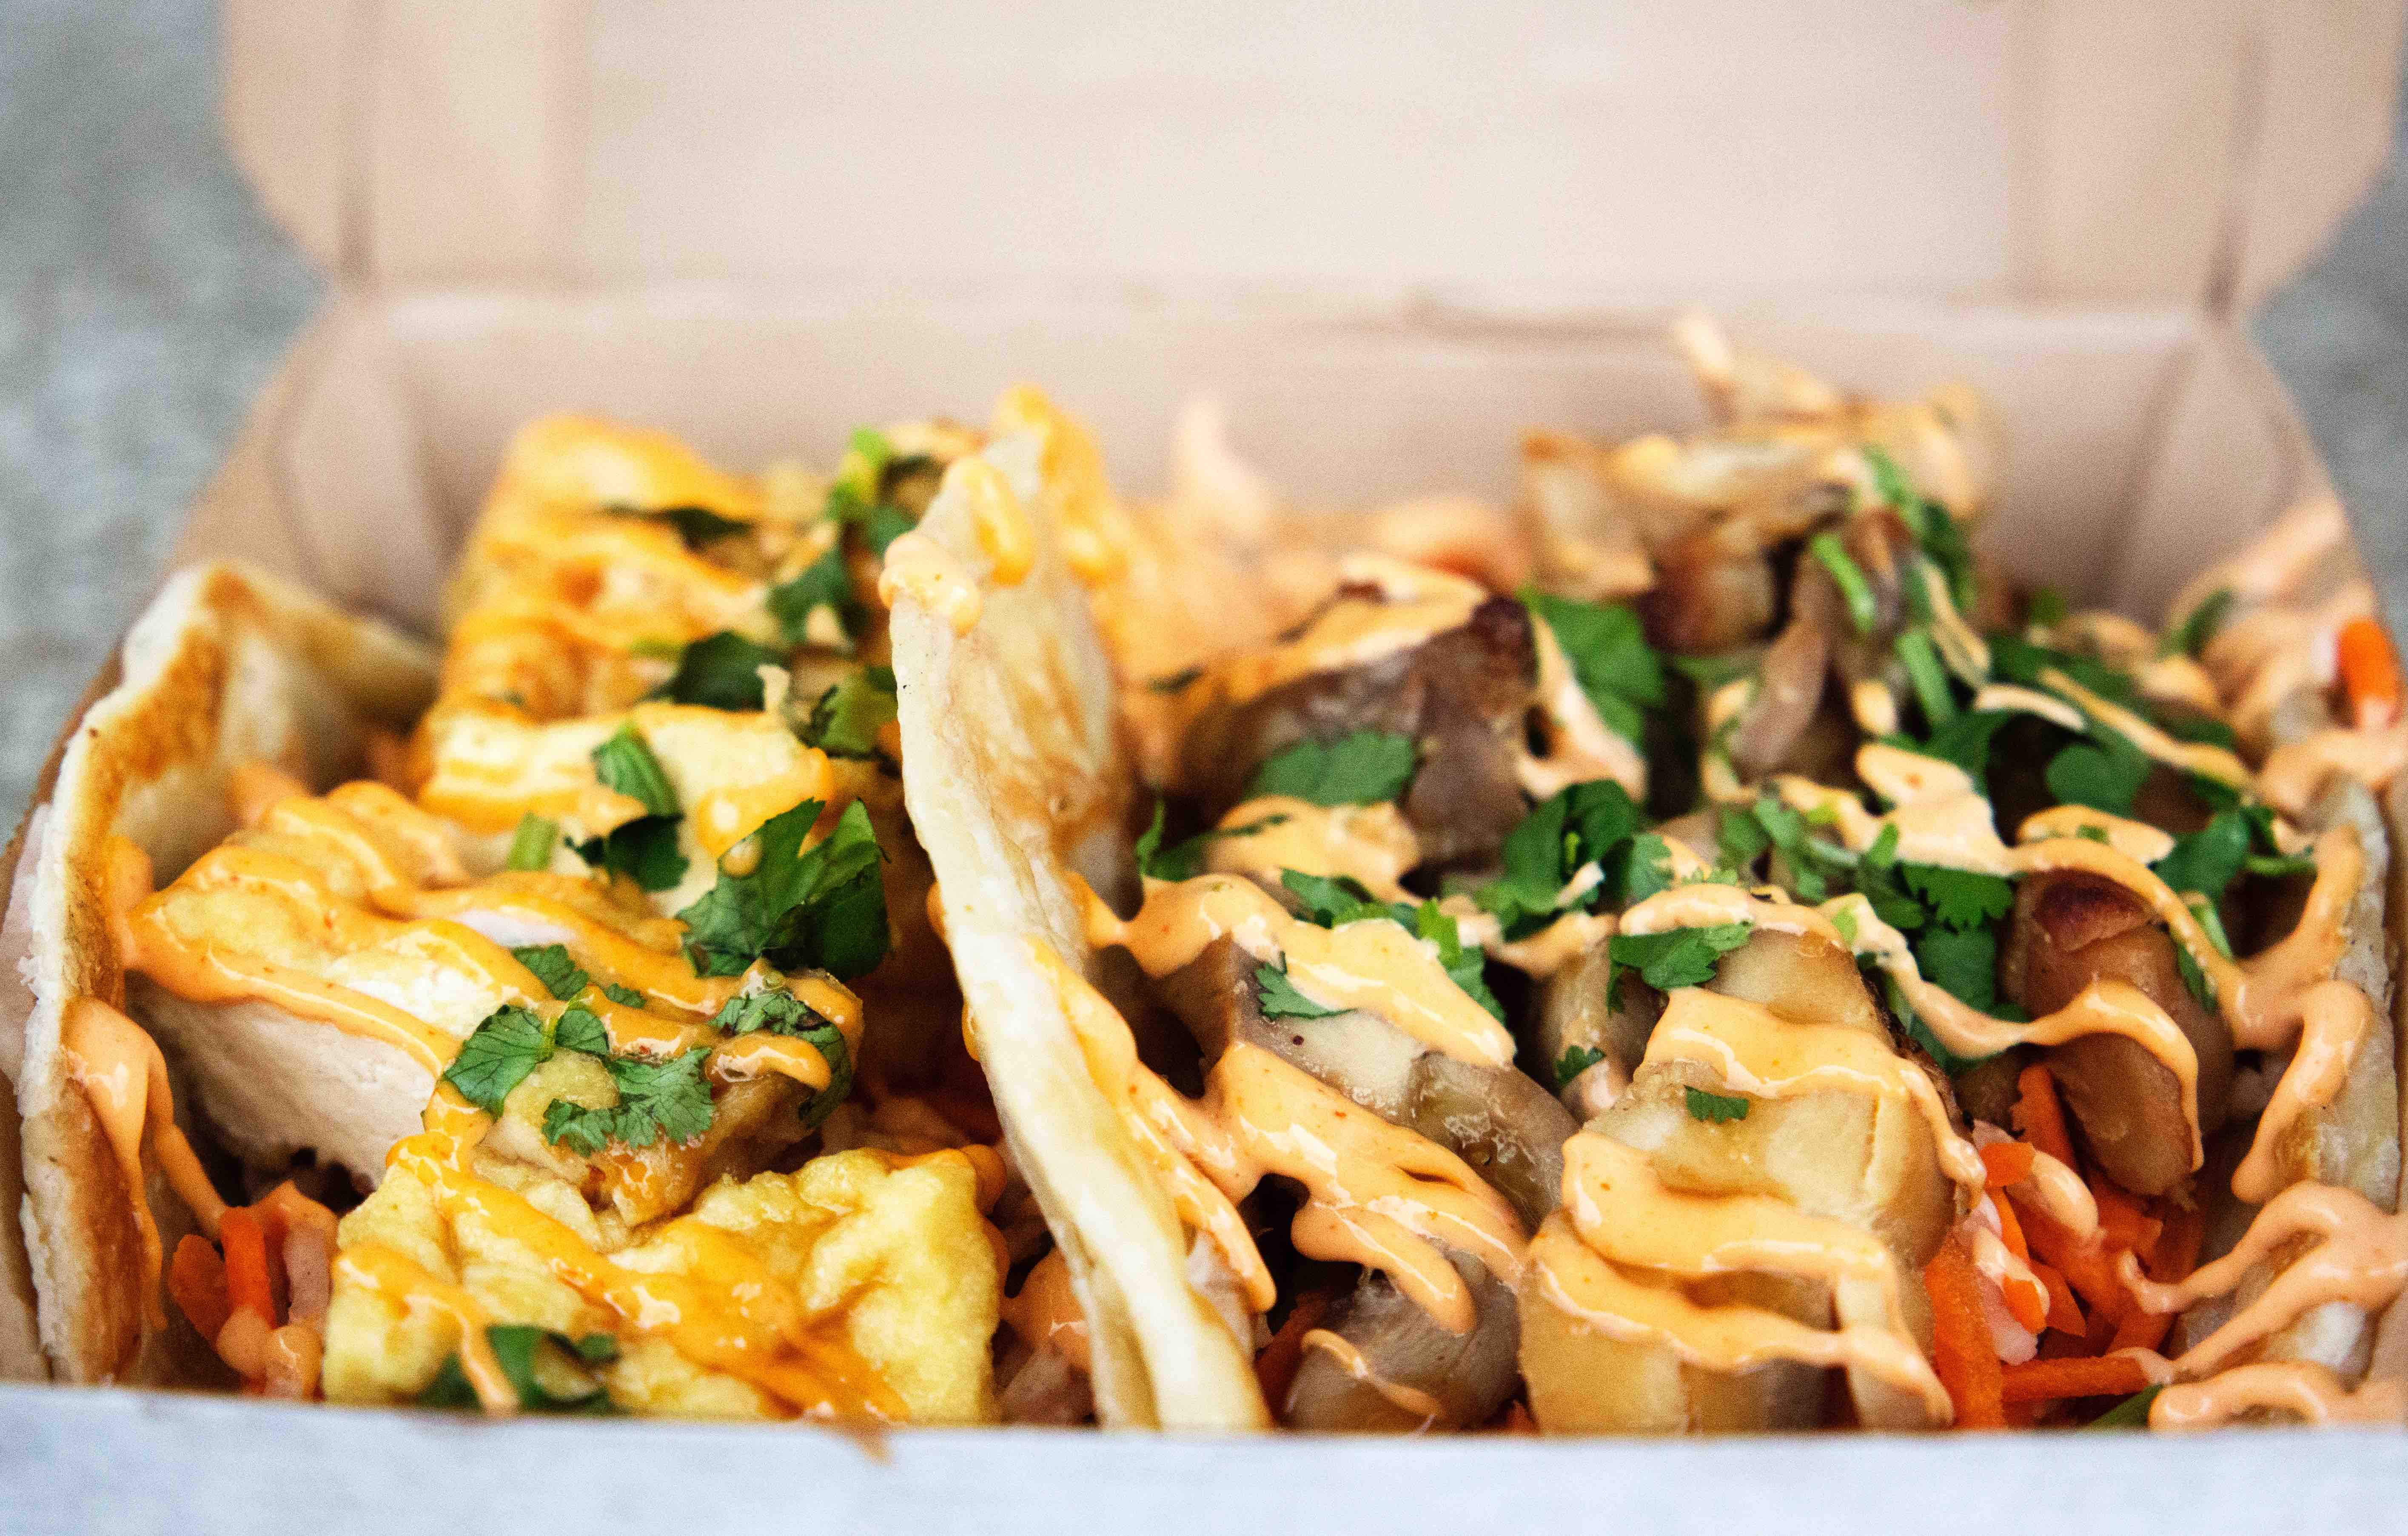 tacos in food truck-style paper tray